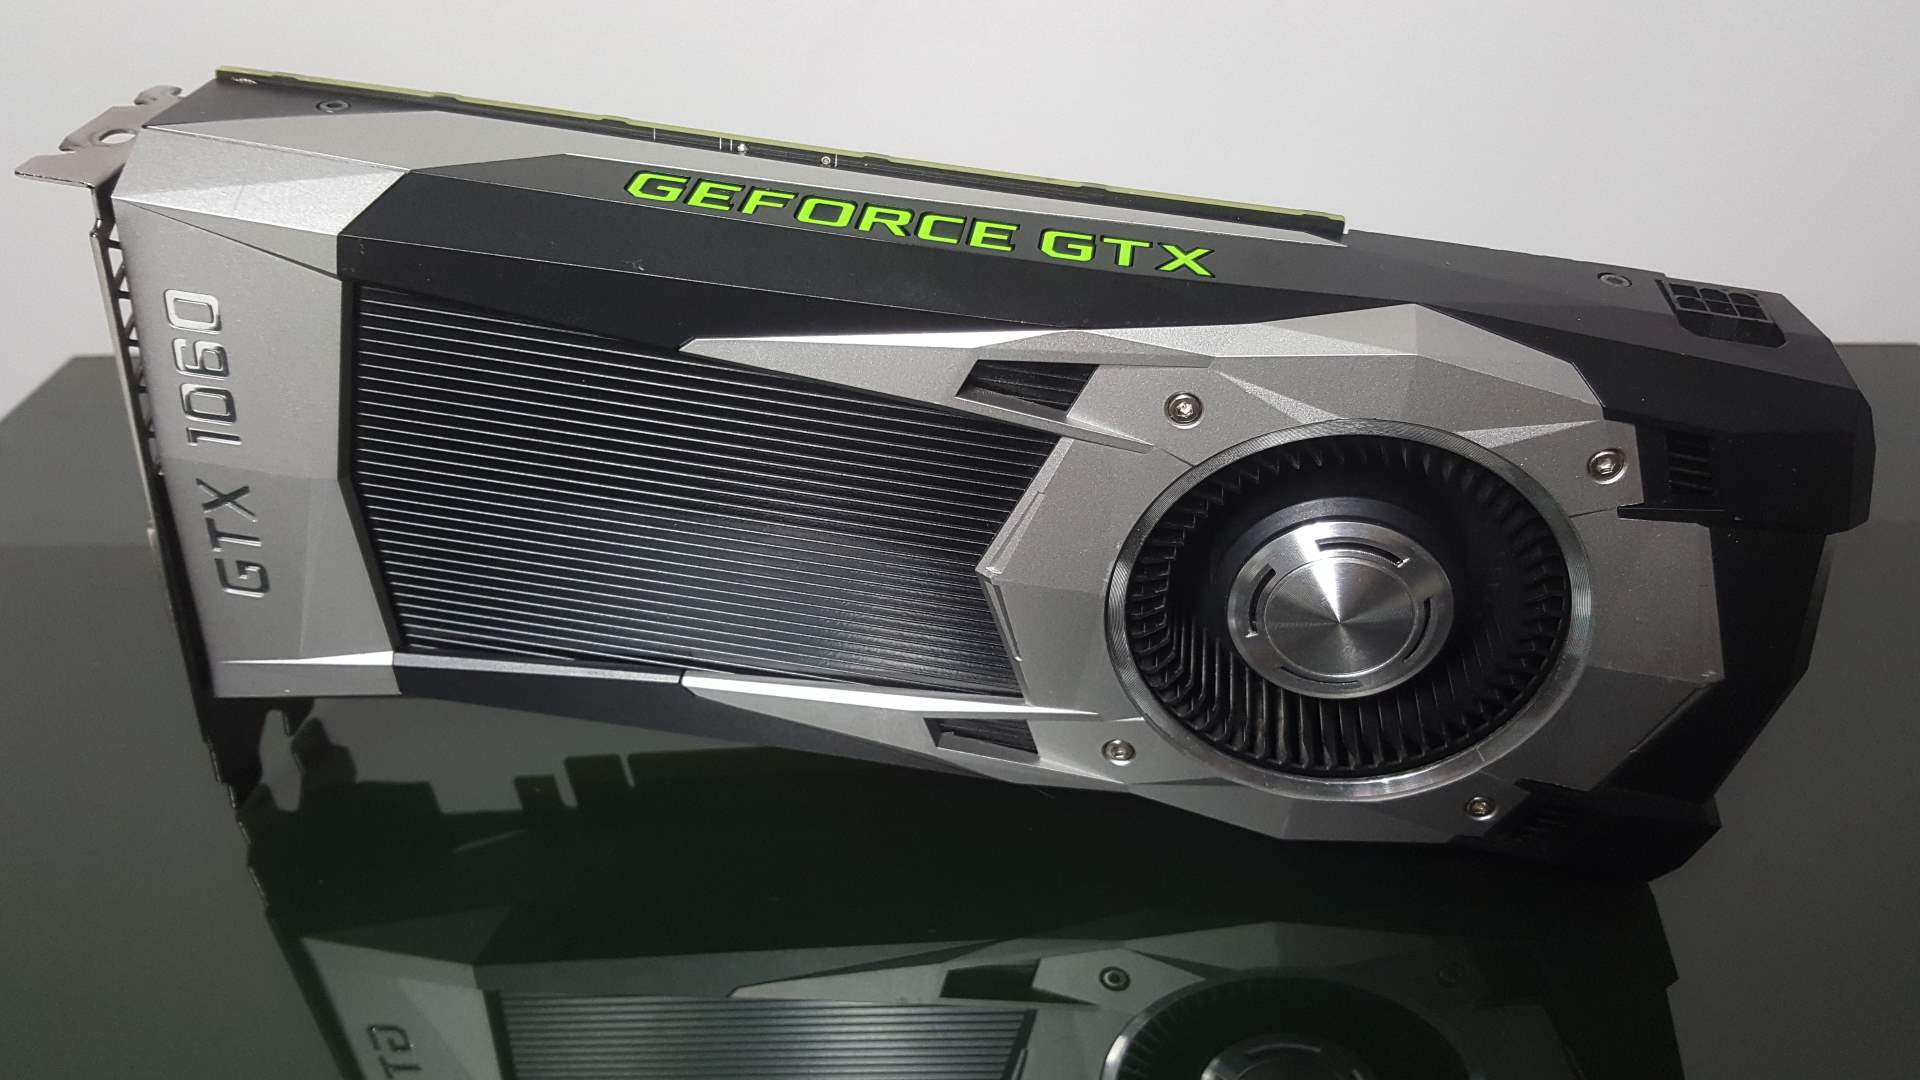 Nvidia's RTX Voice tech quietly enabled on GeForce GTX graphics cards